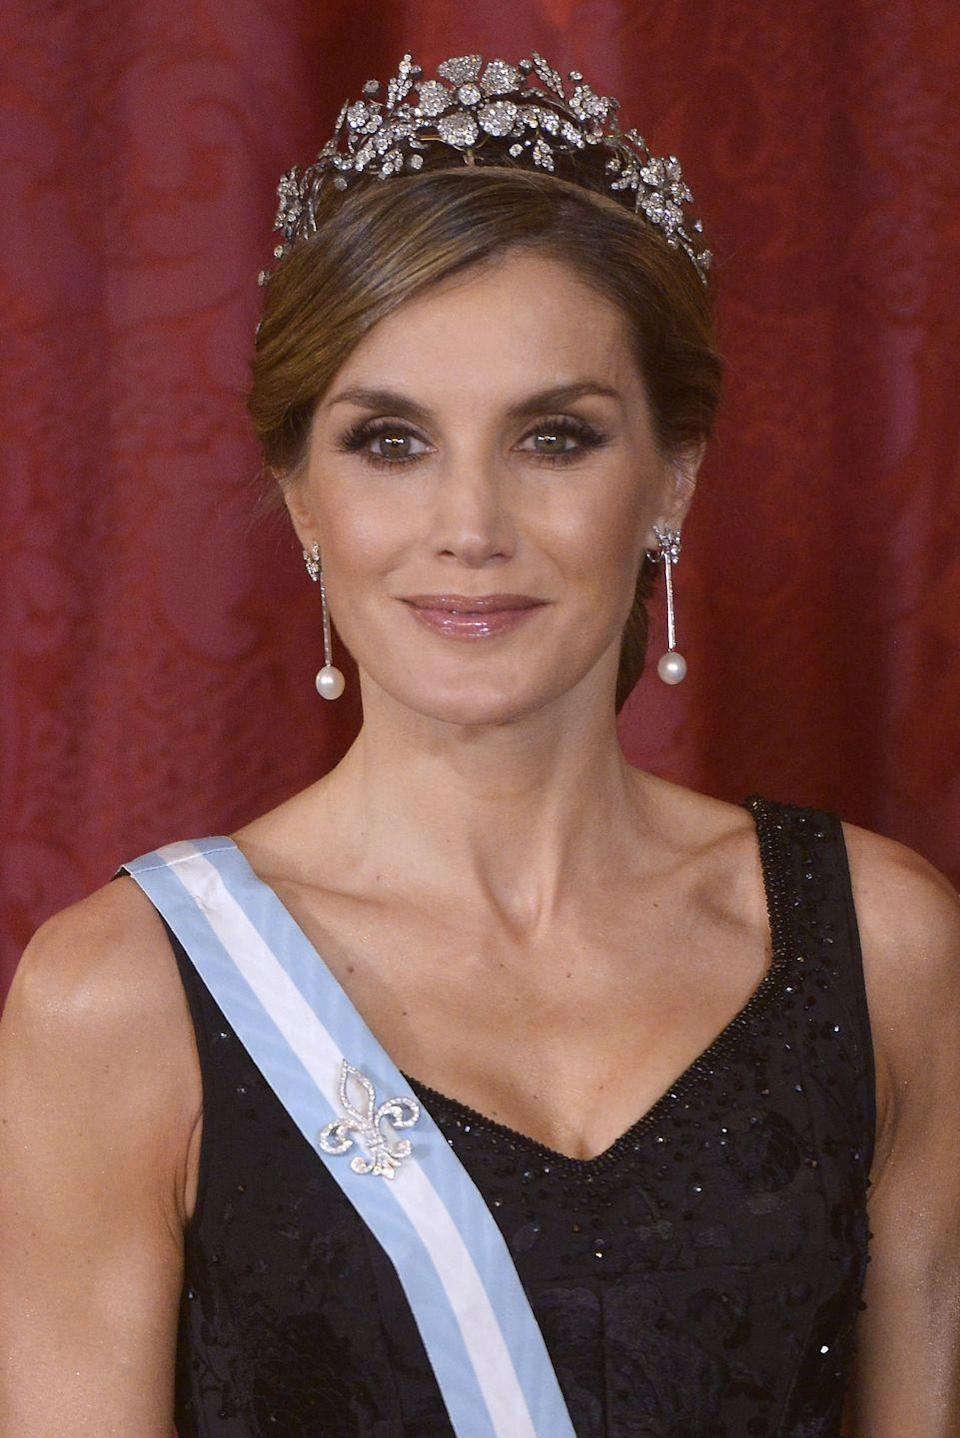 <p>A former journalist and news anchor, Letizia met her future husband on the Galician coast of Spain while she was covering the sinking of an oil ship. In 2004, the pair tied the knot after Felipe, the then-Prince of Asturias, proposed with a 16-baguette diamond ring. Letizia officially became the Queen of Spain 10 years later, after Felipe ascended the throne from his father. She is the first Spanish queen to have commoner roots, though she is also a descendent of medieval nobility.</p>